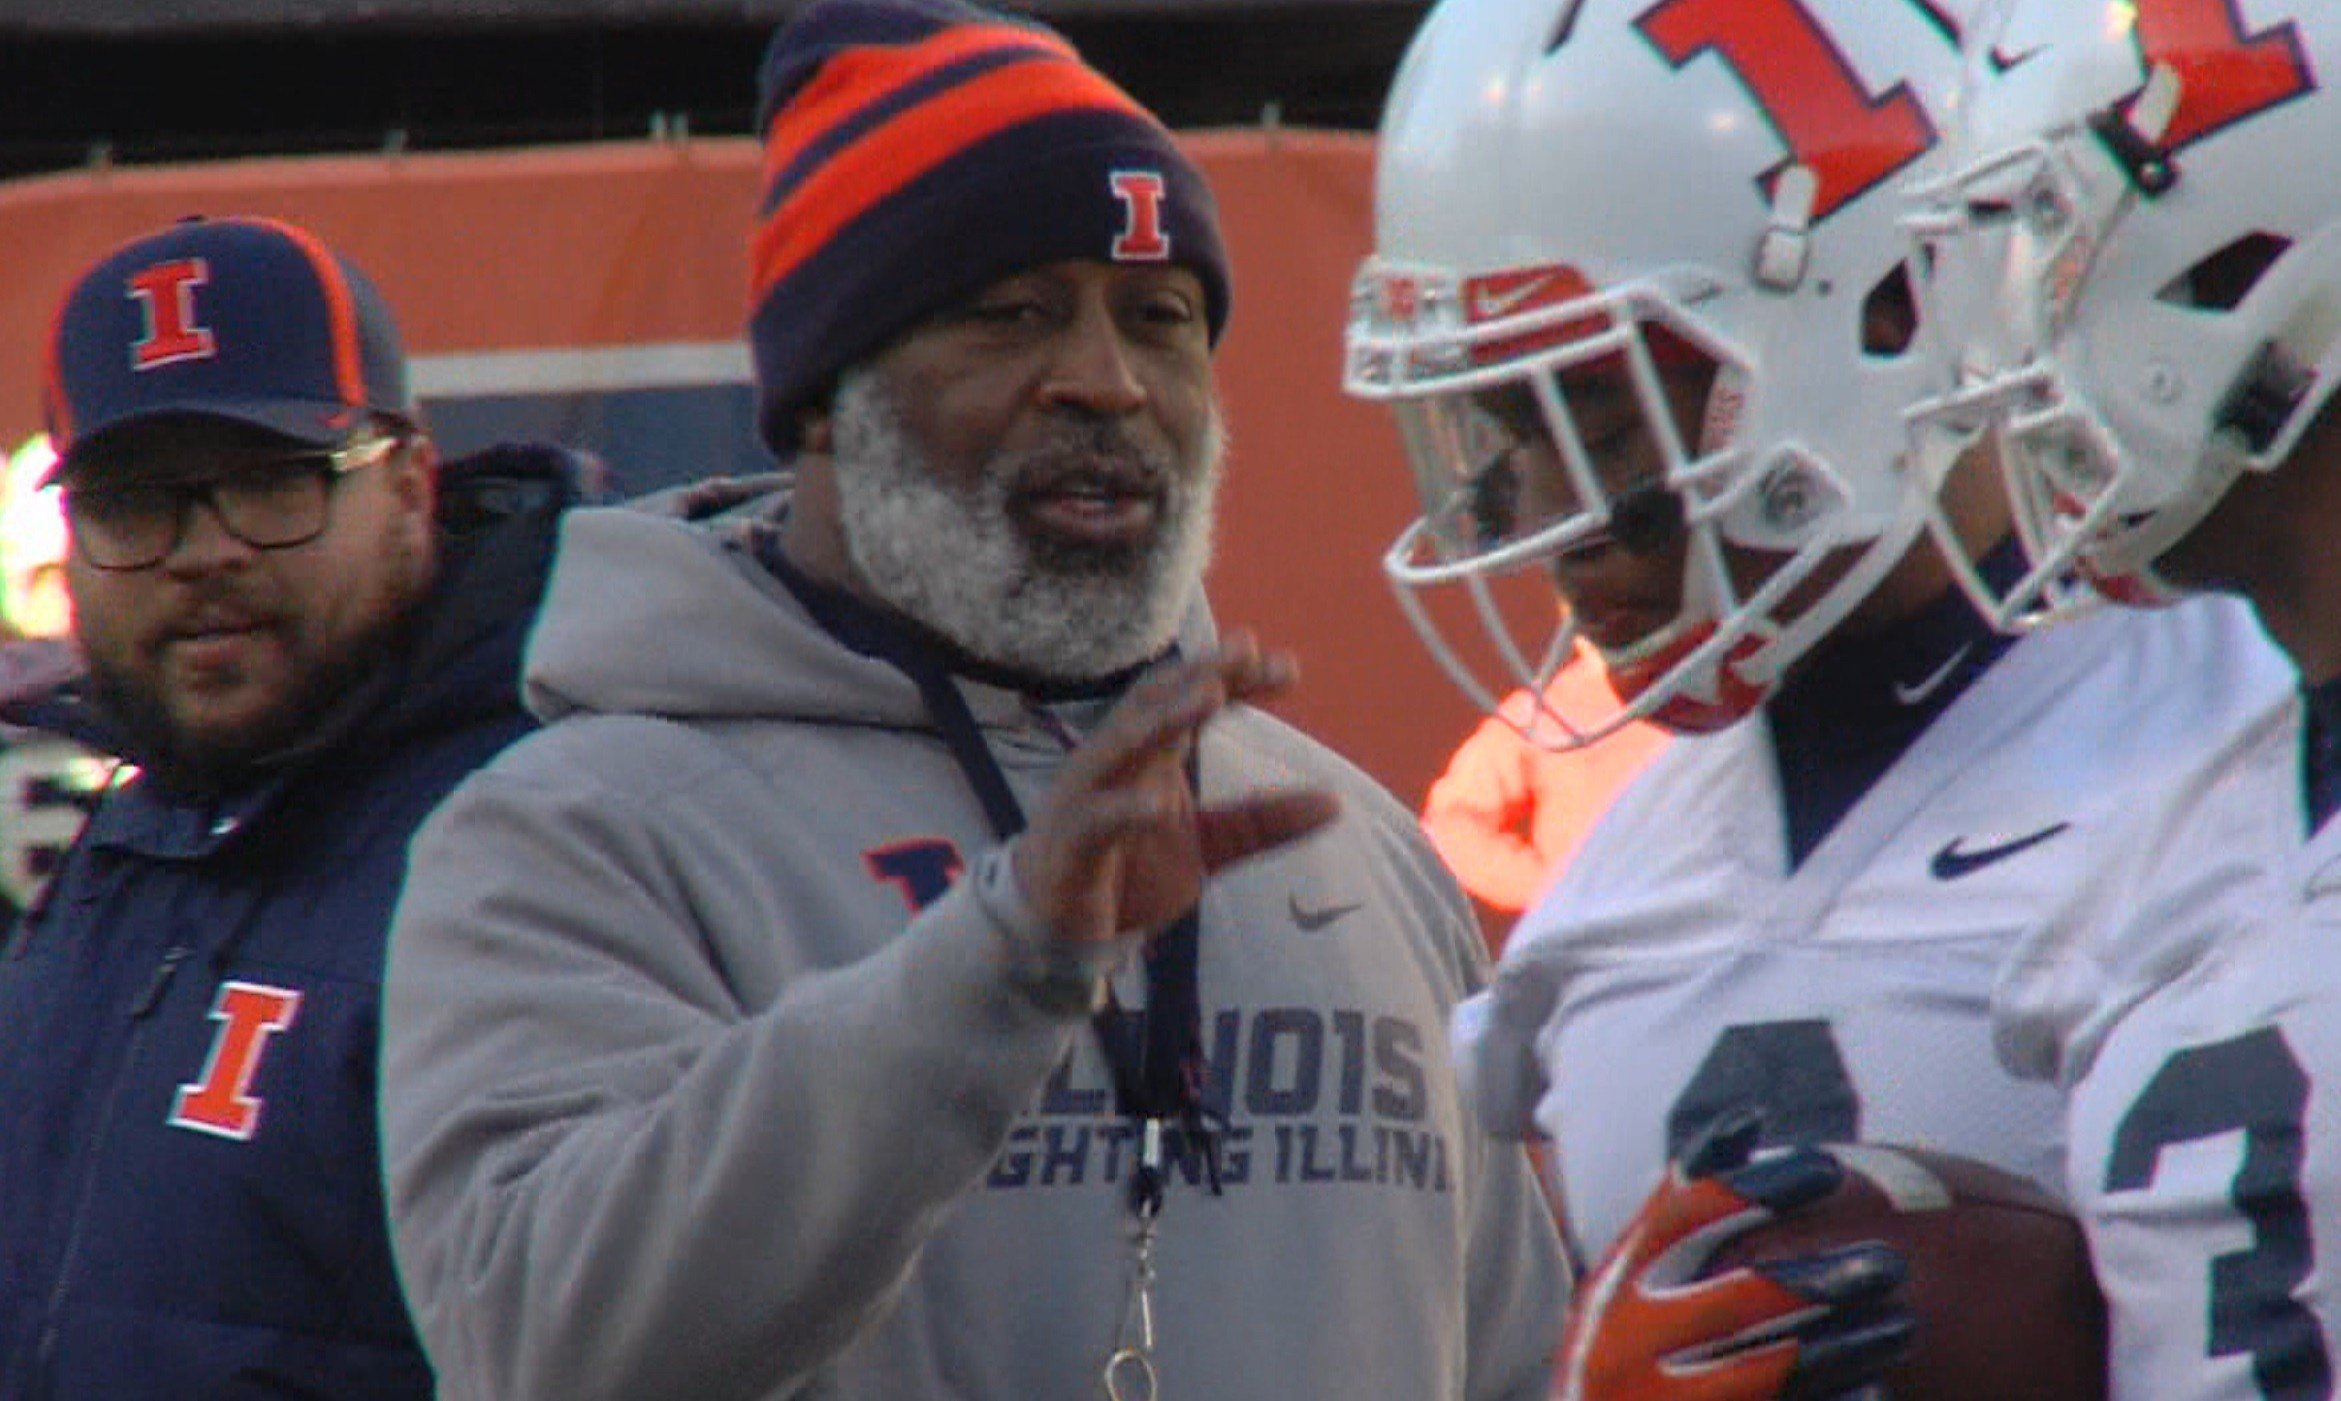 Illinois head coach Lovie Smith begins his third season as the leader of the Illini, but he'll have to do it with a walking boot after injuring his foot this offseason.